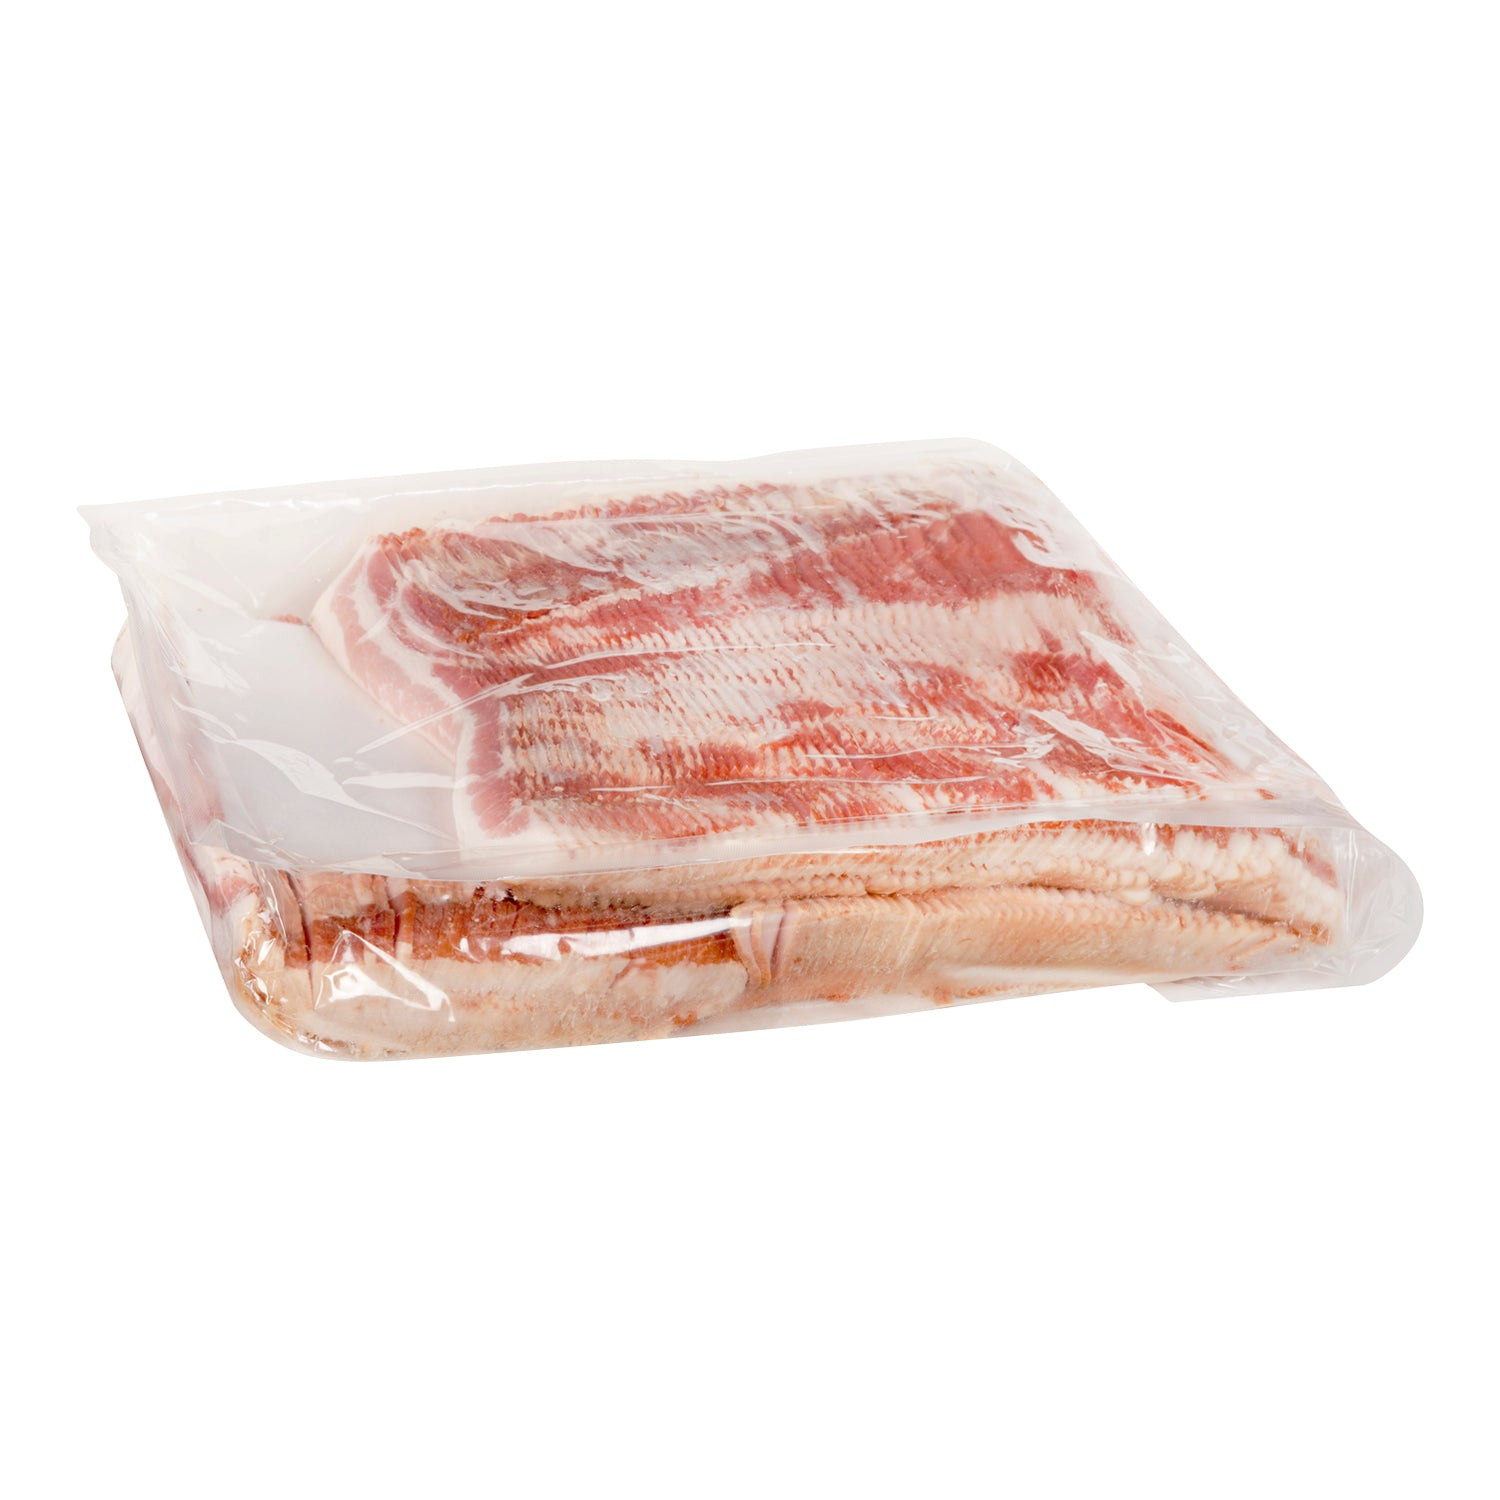 Sysco Classic Fresh Medium Sliced Centre Cut Bacon 5 kg - 1 Pack [$11.50/kg]